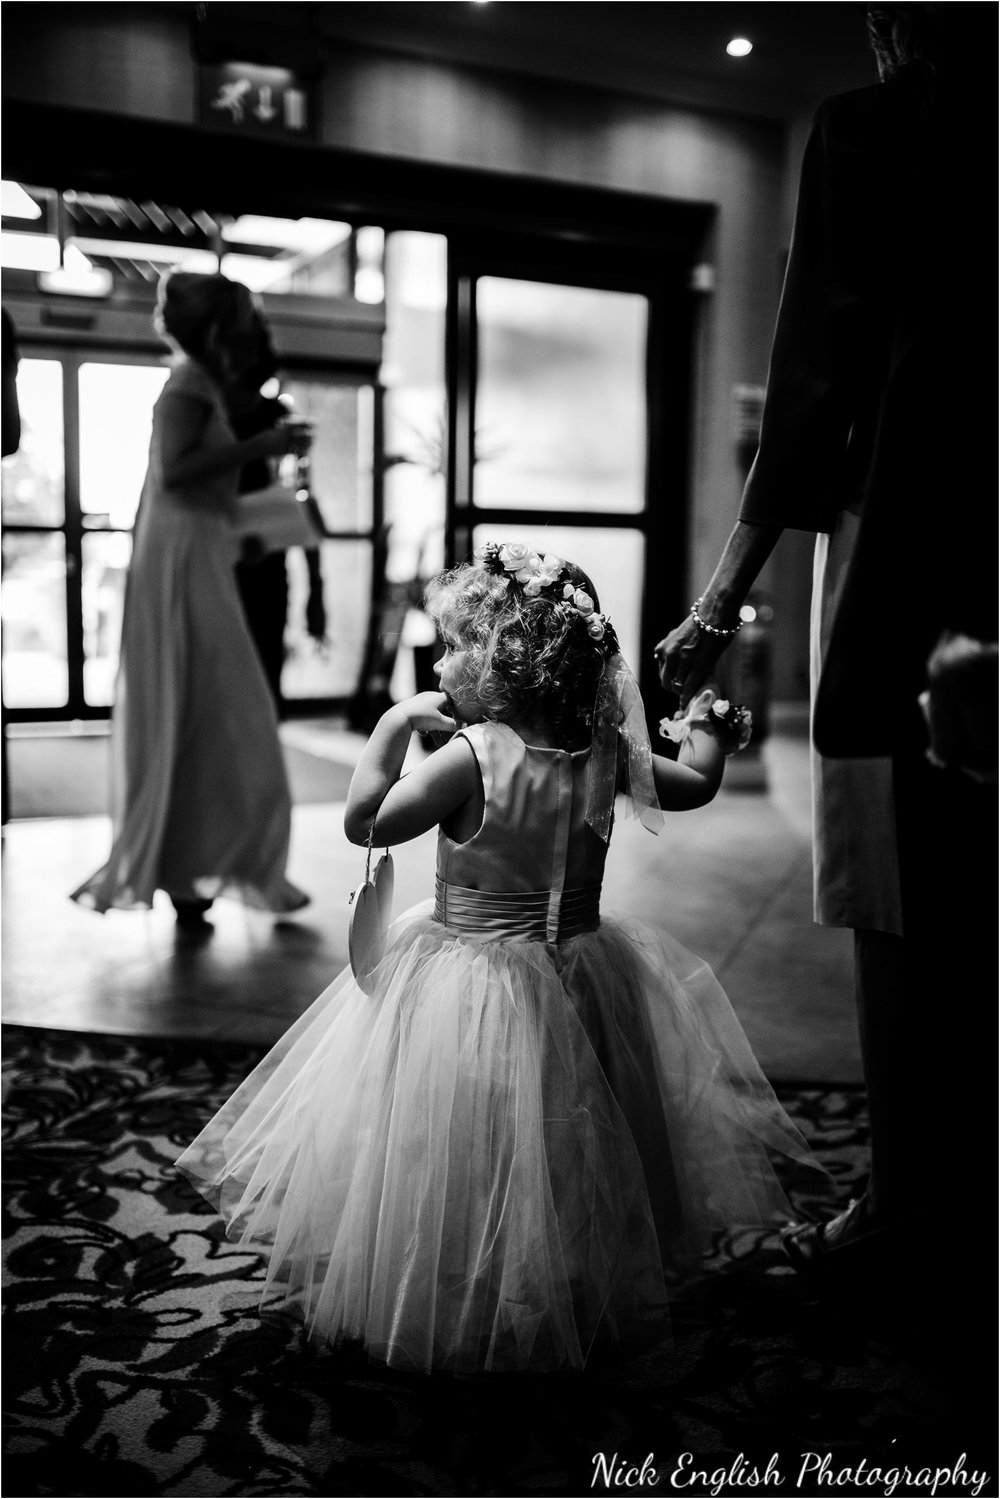 Emily David Wedding Photographs at Barton Grange Preston by Nick English Photography 46jpg.jpeg